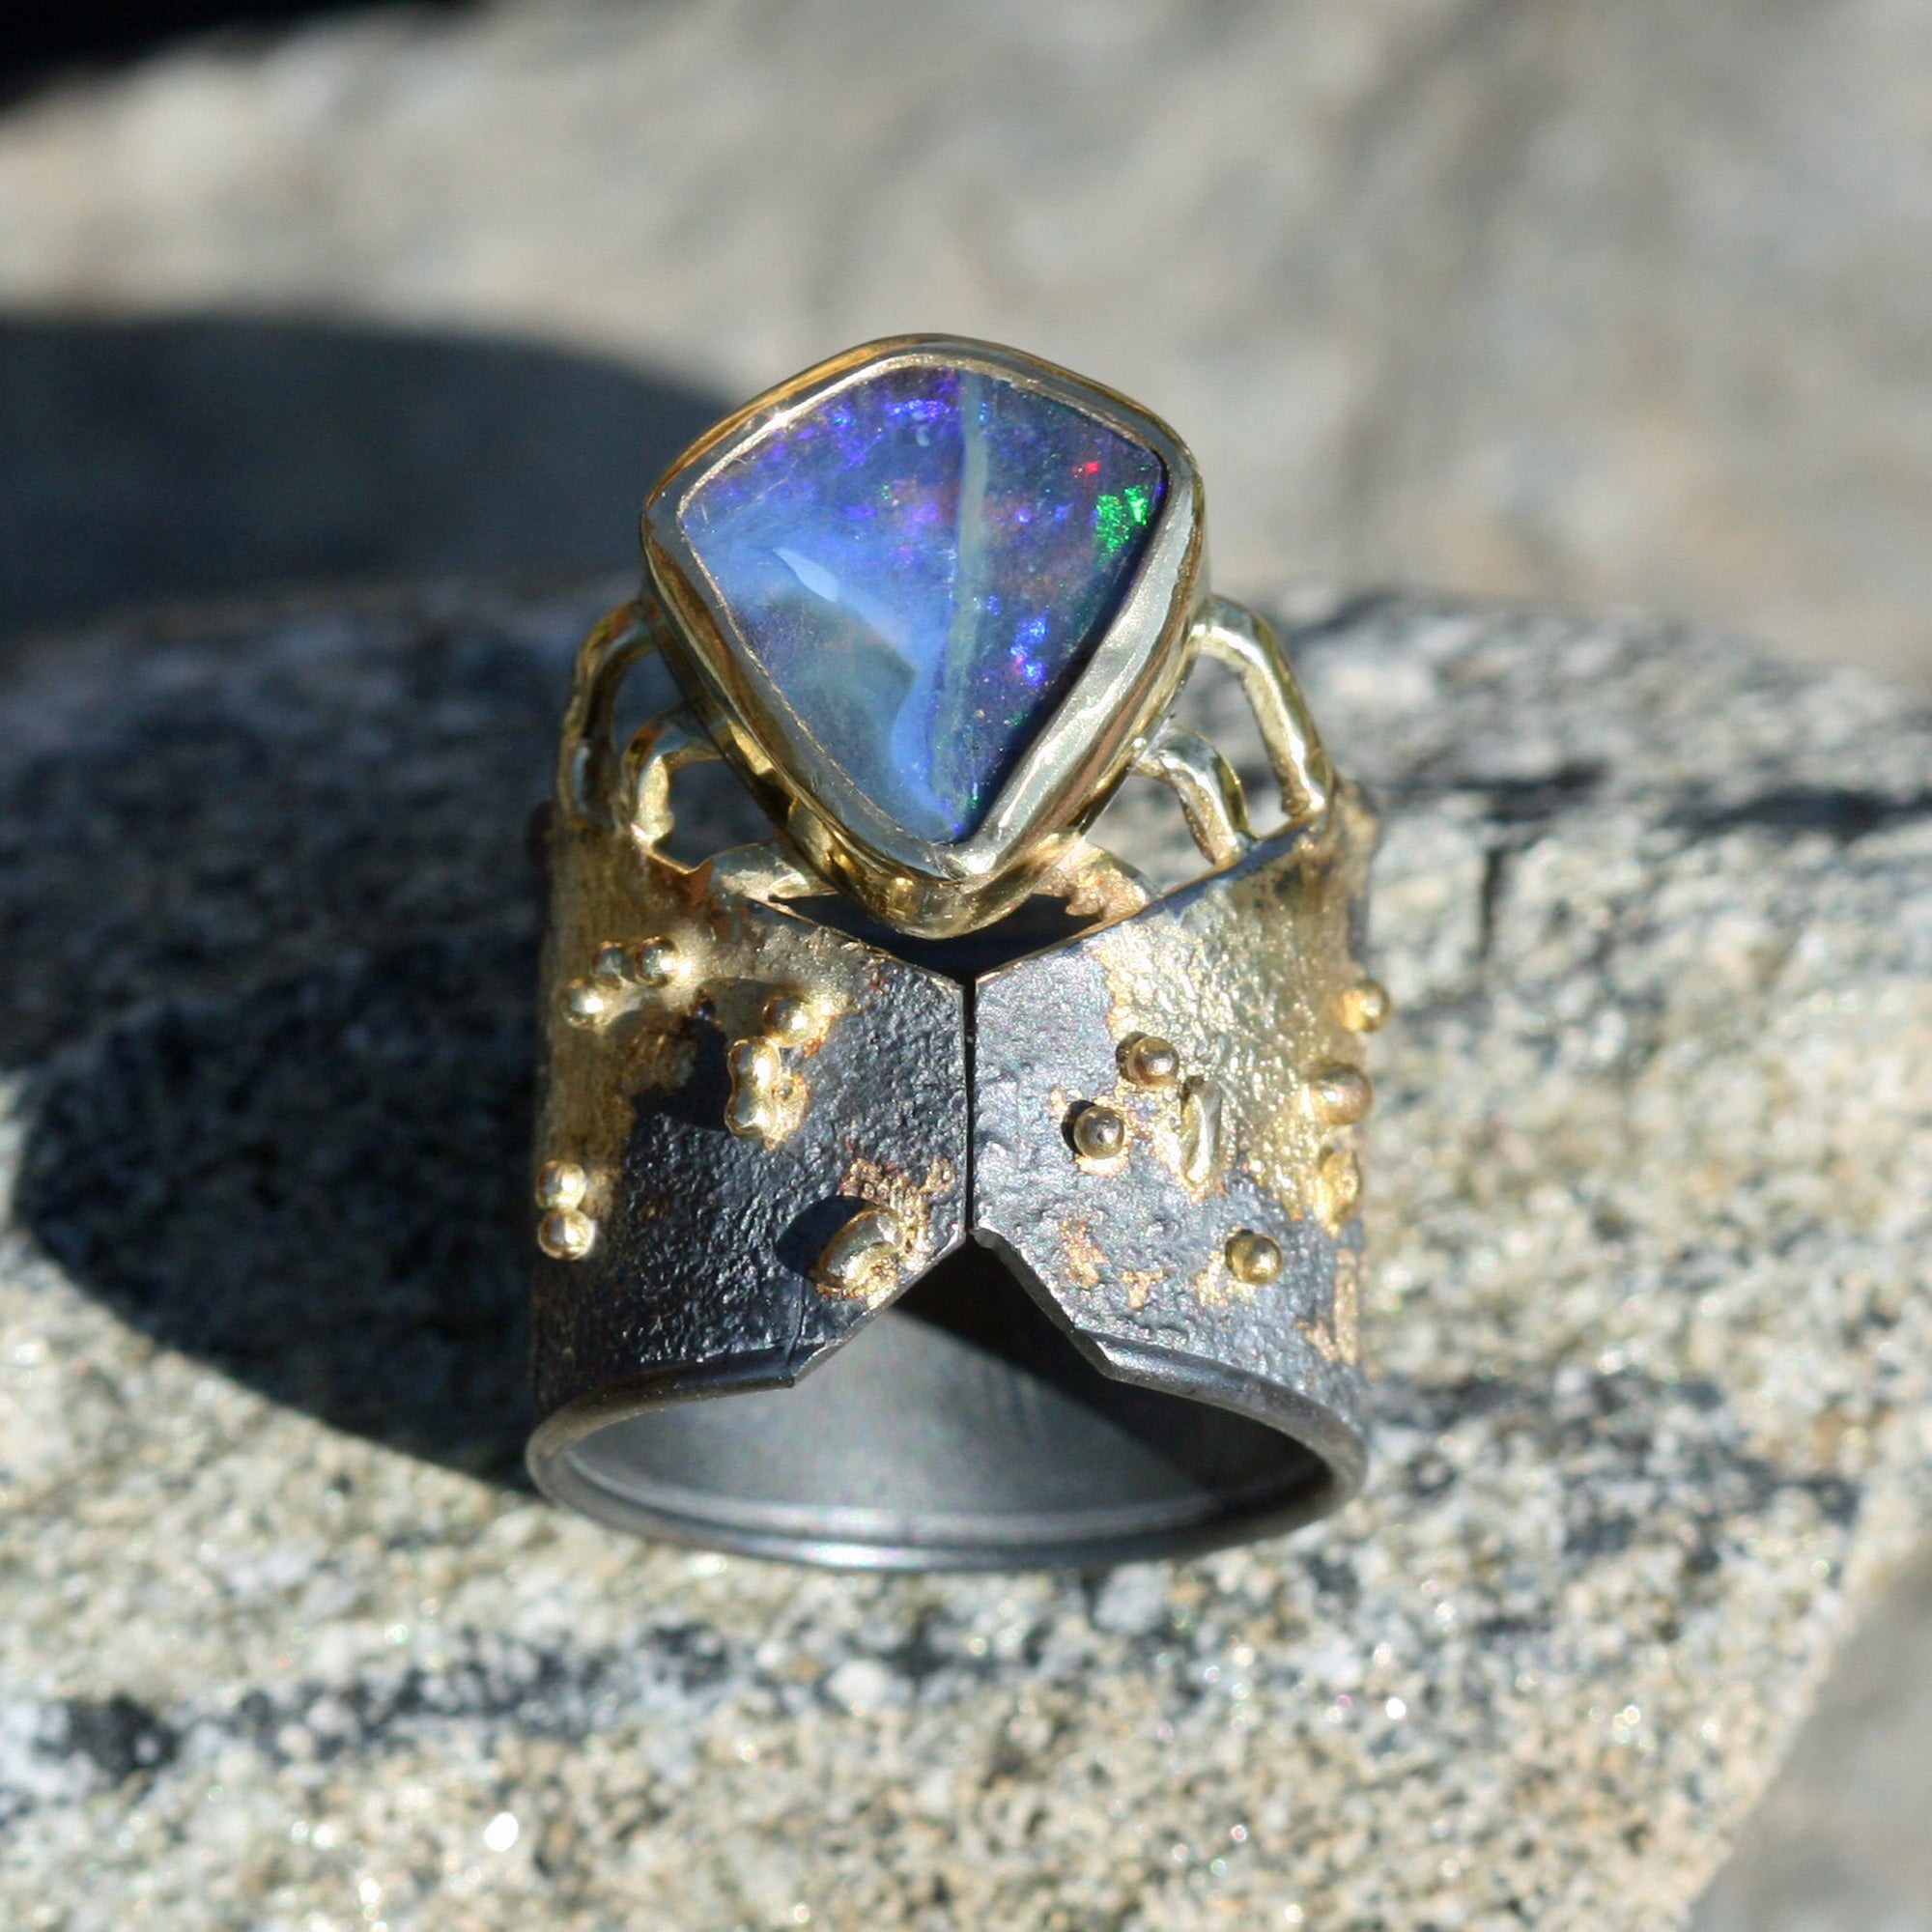 enameled in blue gray. Ring in real raw volcanic ash from Etna